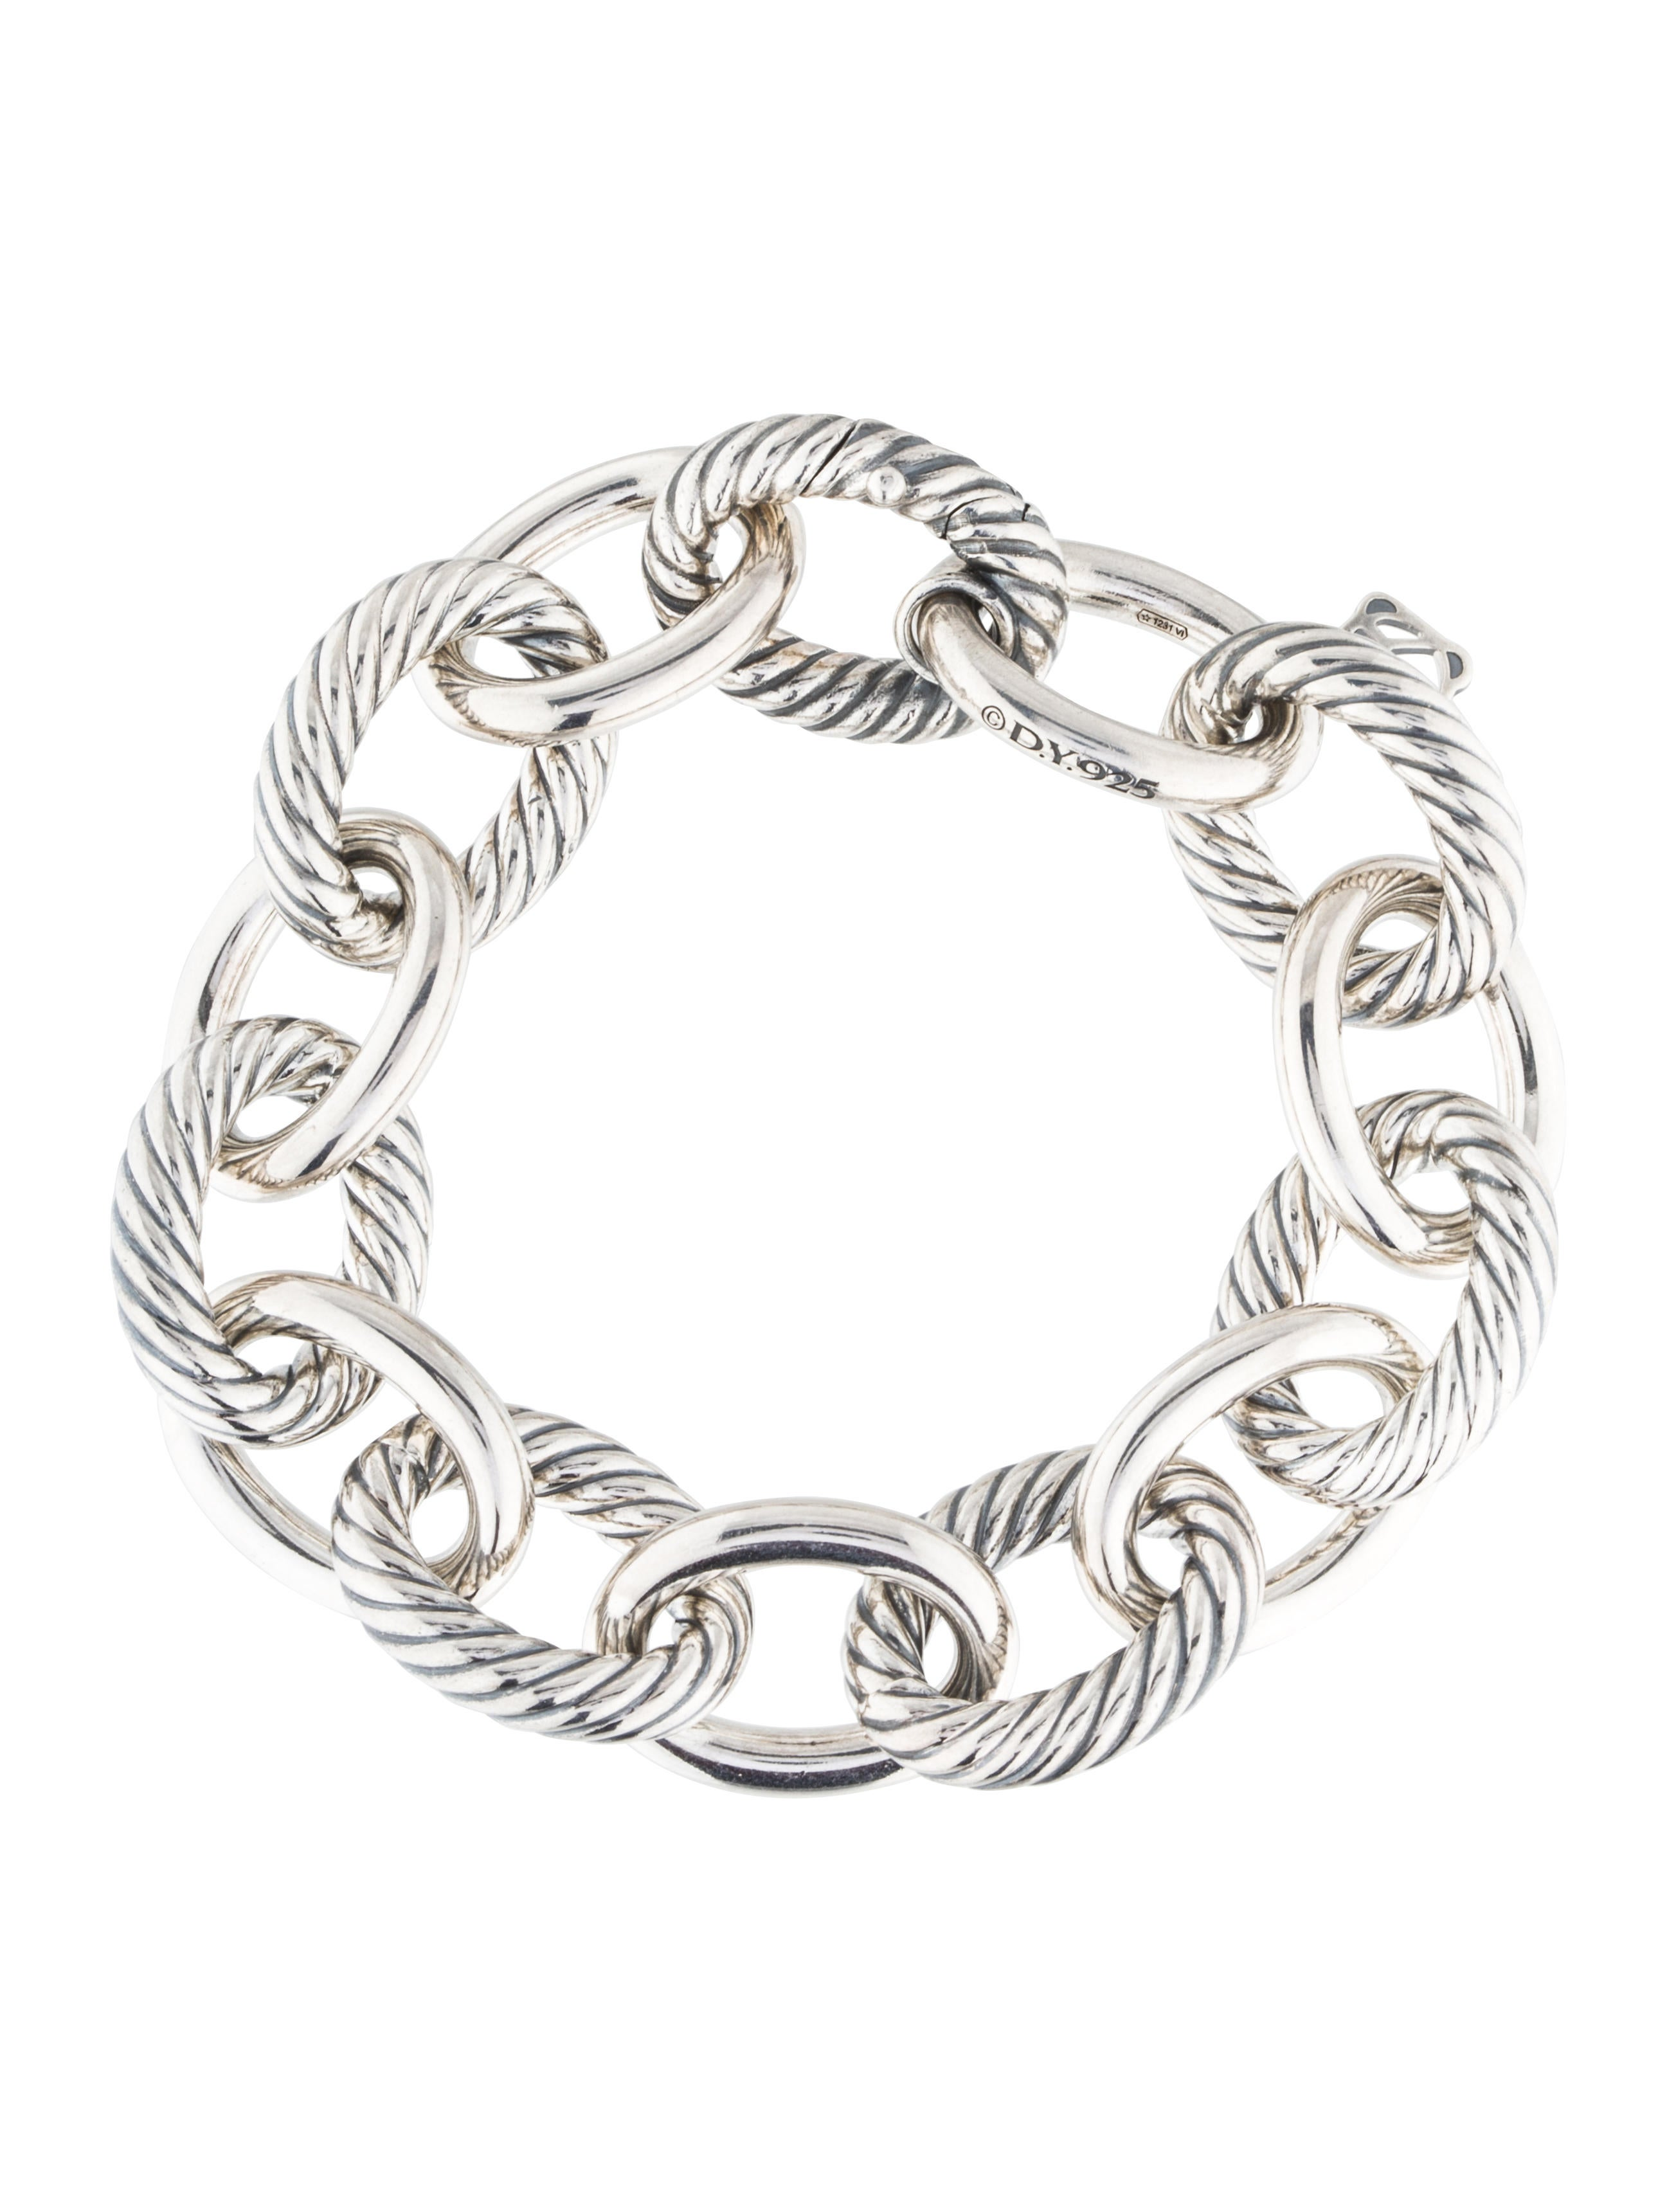 david yurman oval link bracelet david yurman large oval link bracelet bracelets 3846